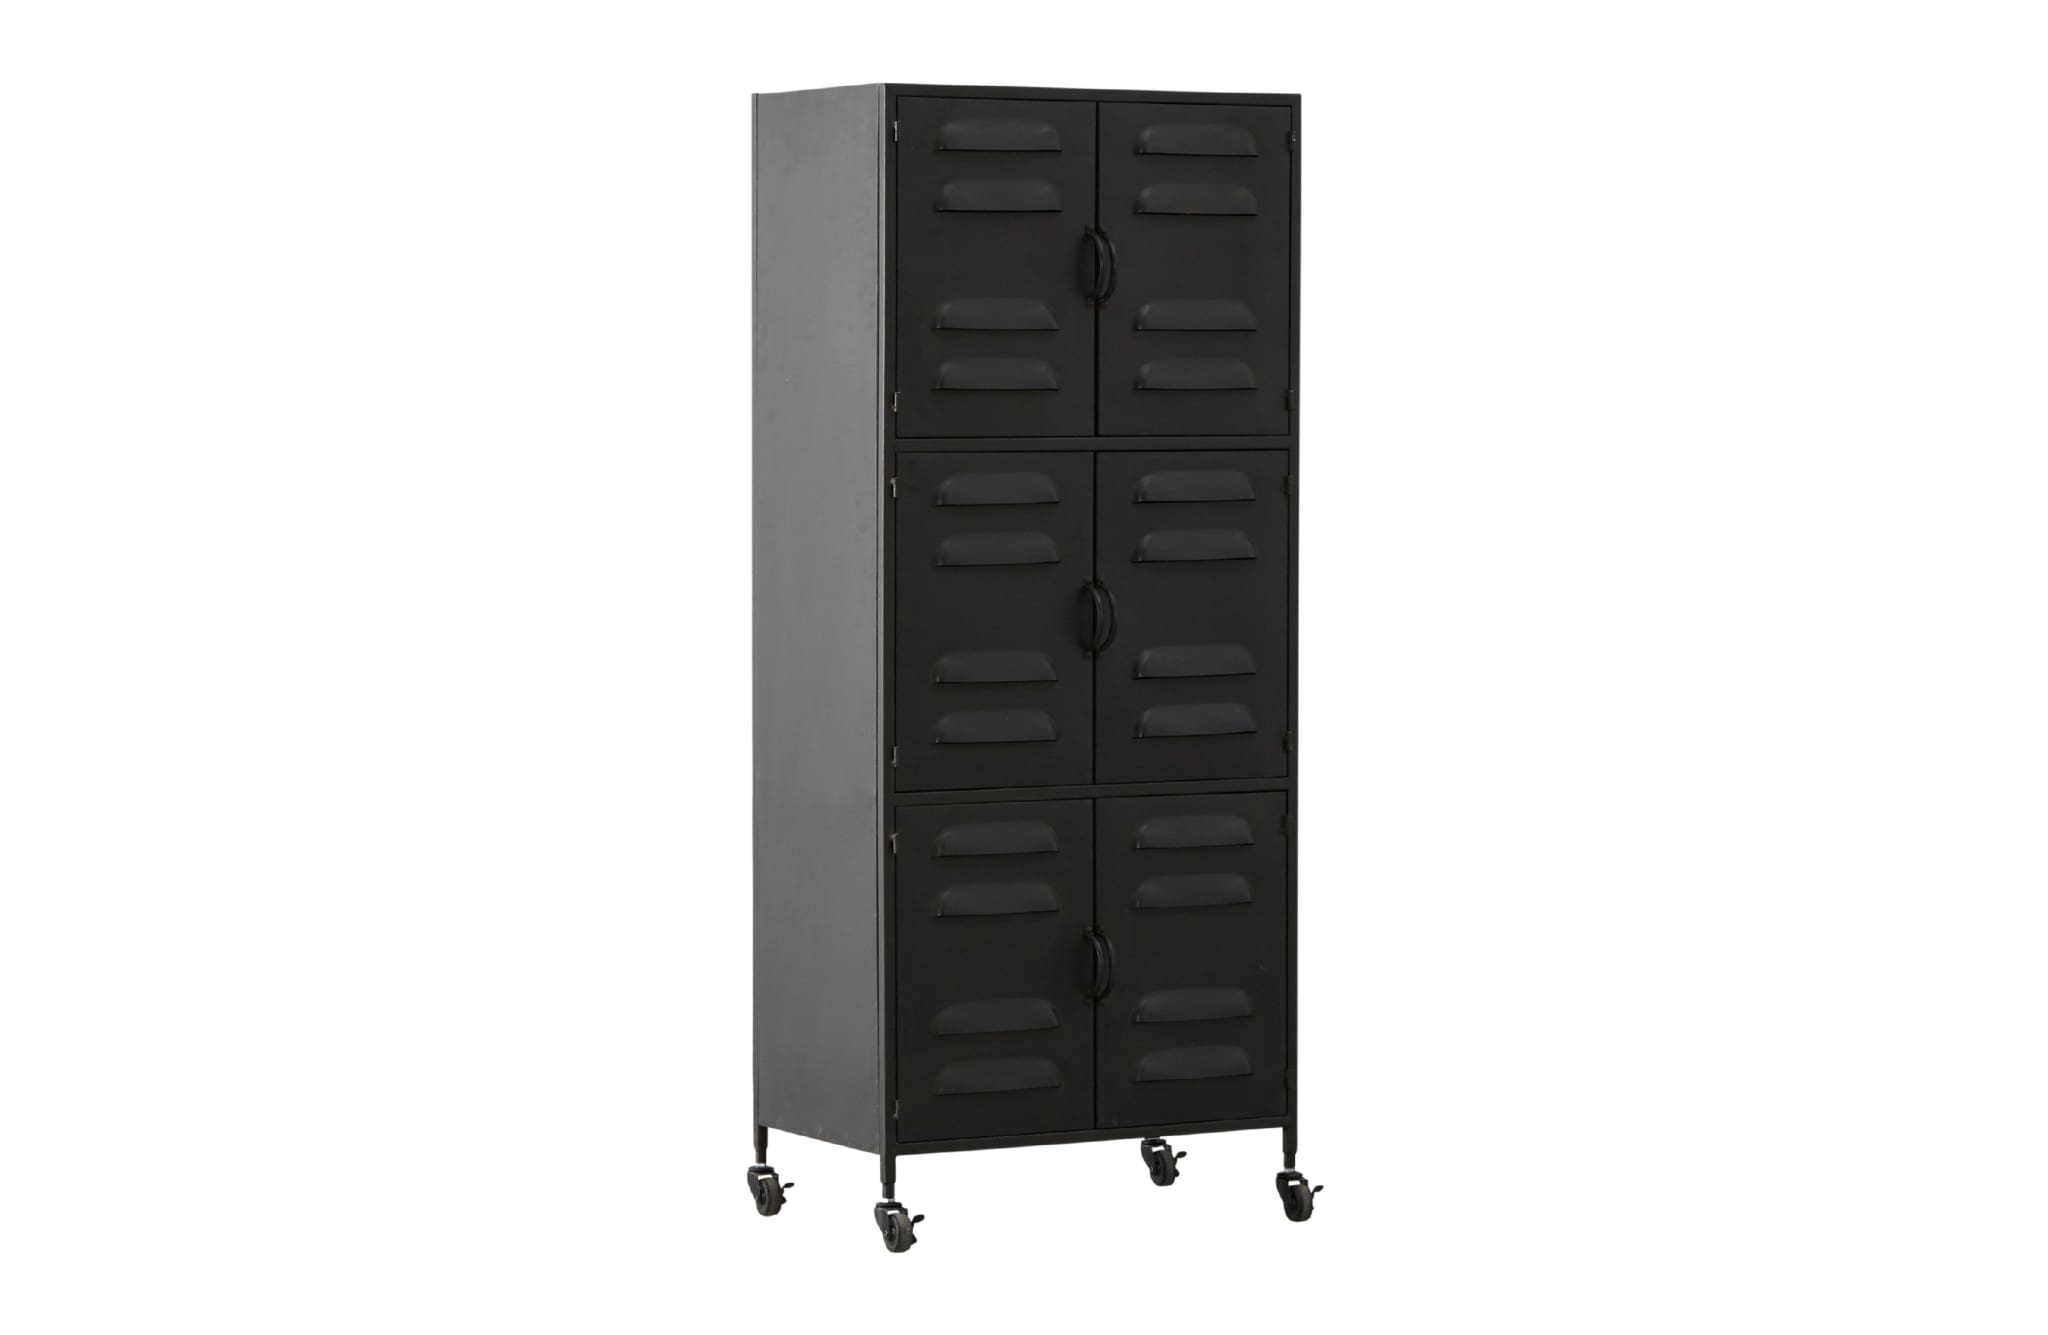 Beau Boaz Black Metal Cabinet By Woood   Storage Cabinet. Boaz Black Metal  Cabinet By Woood   Storage Cabinet